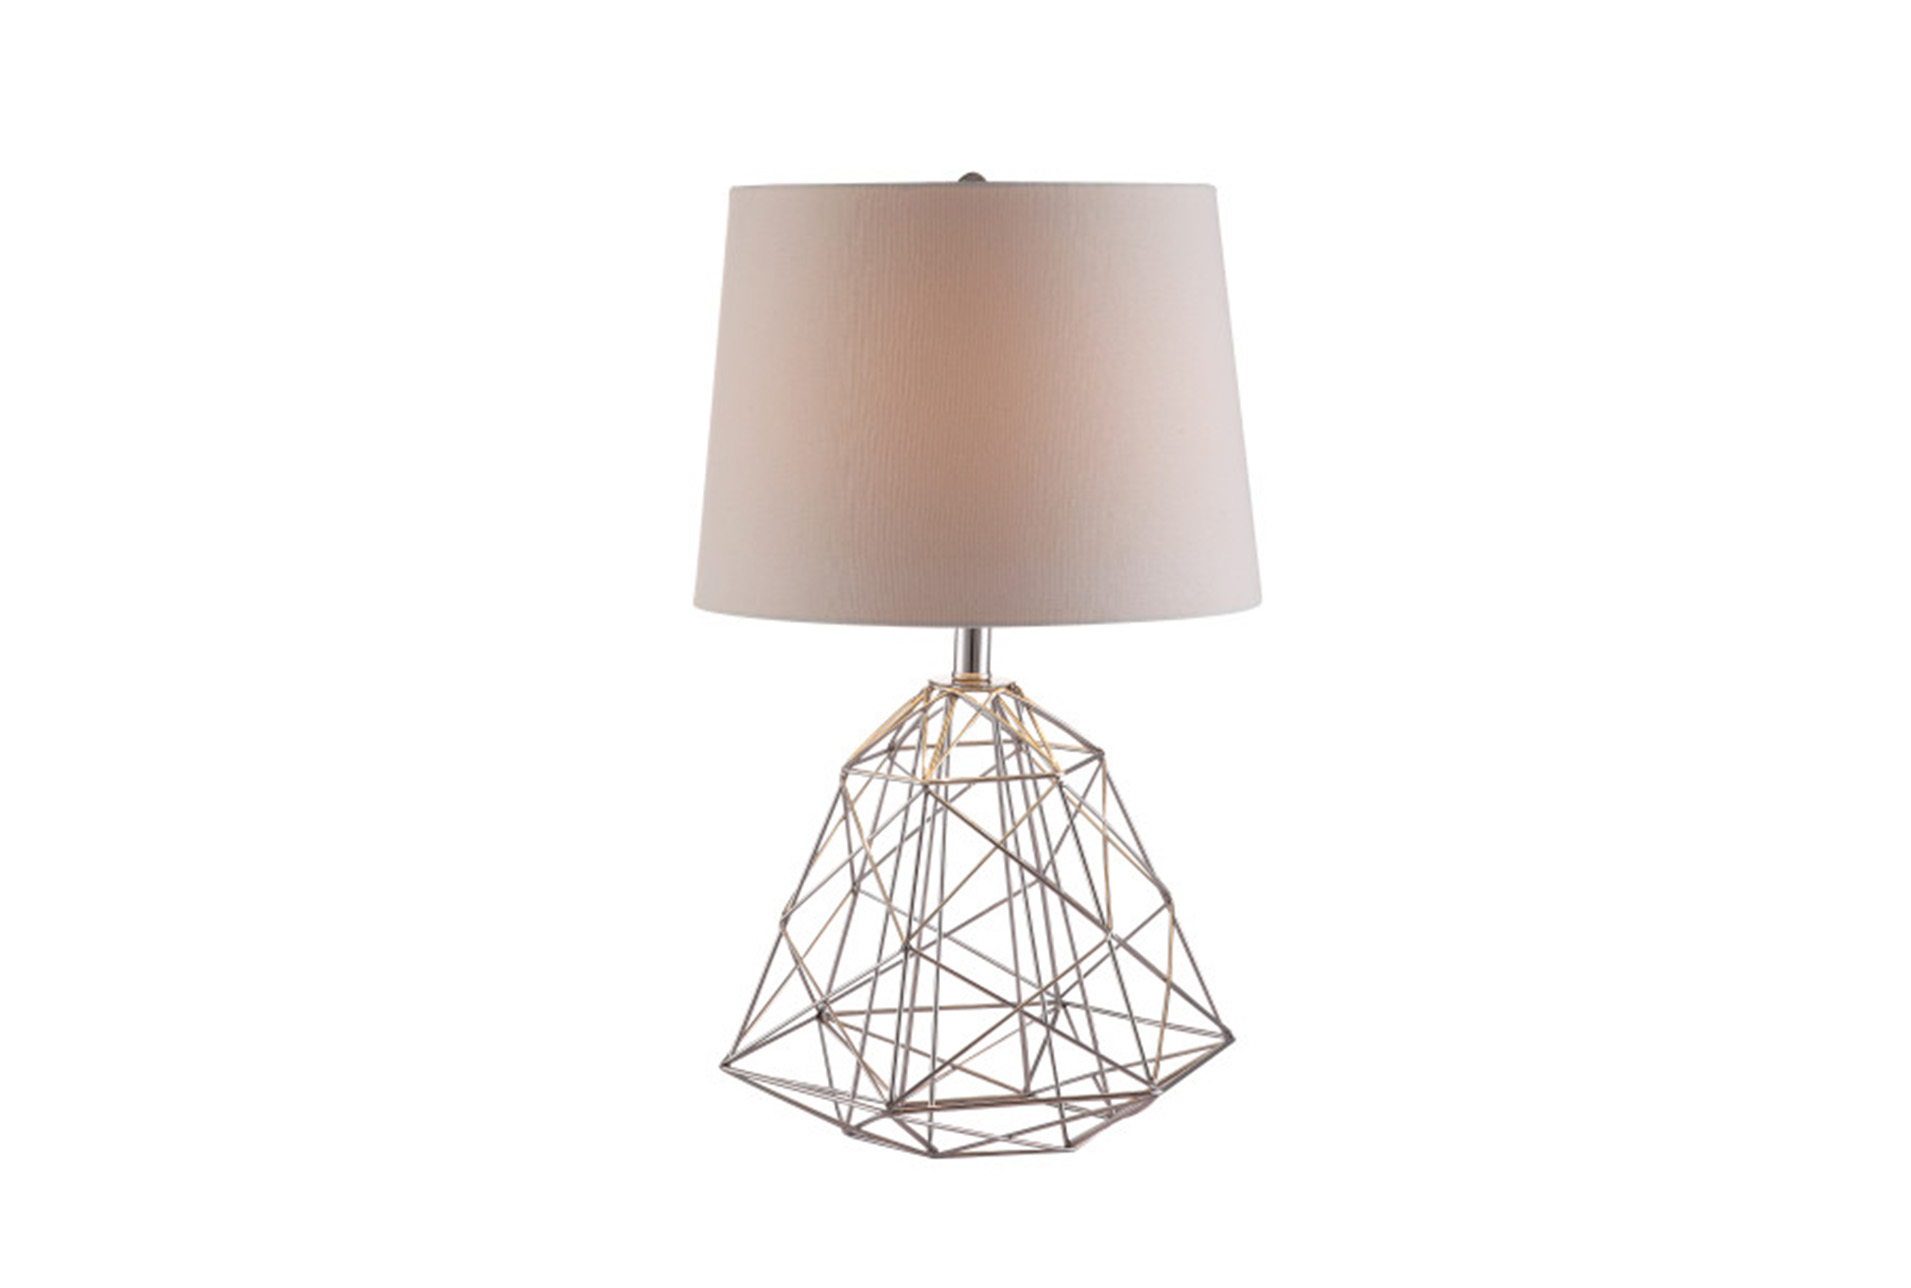 Wire Table Lamp Up Center Chord A C E G Various Names A7 Adom7 Dominant Seventh Related Images